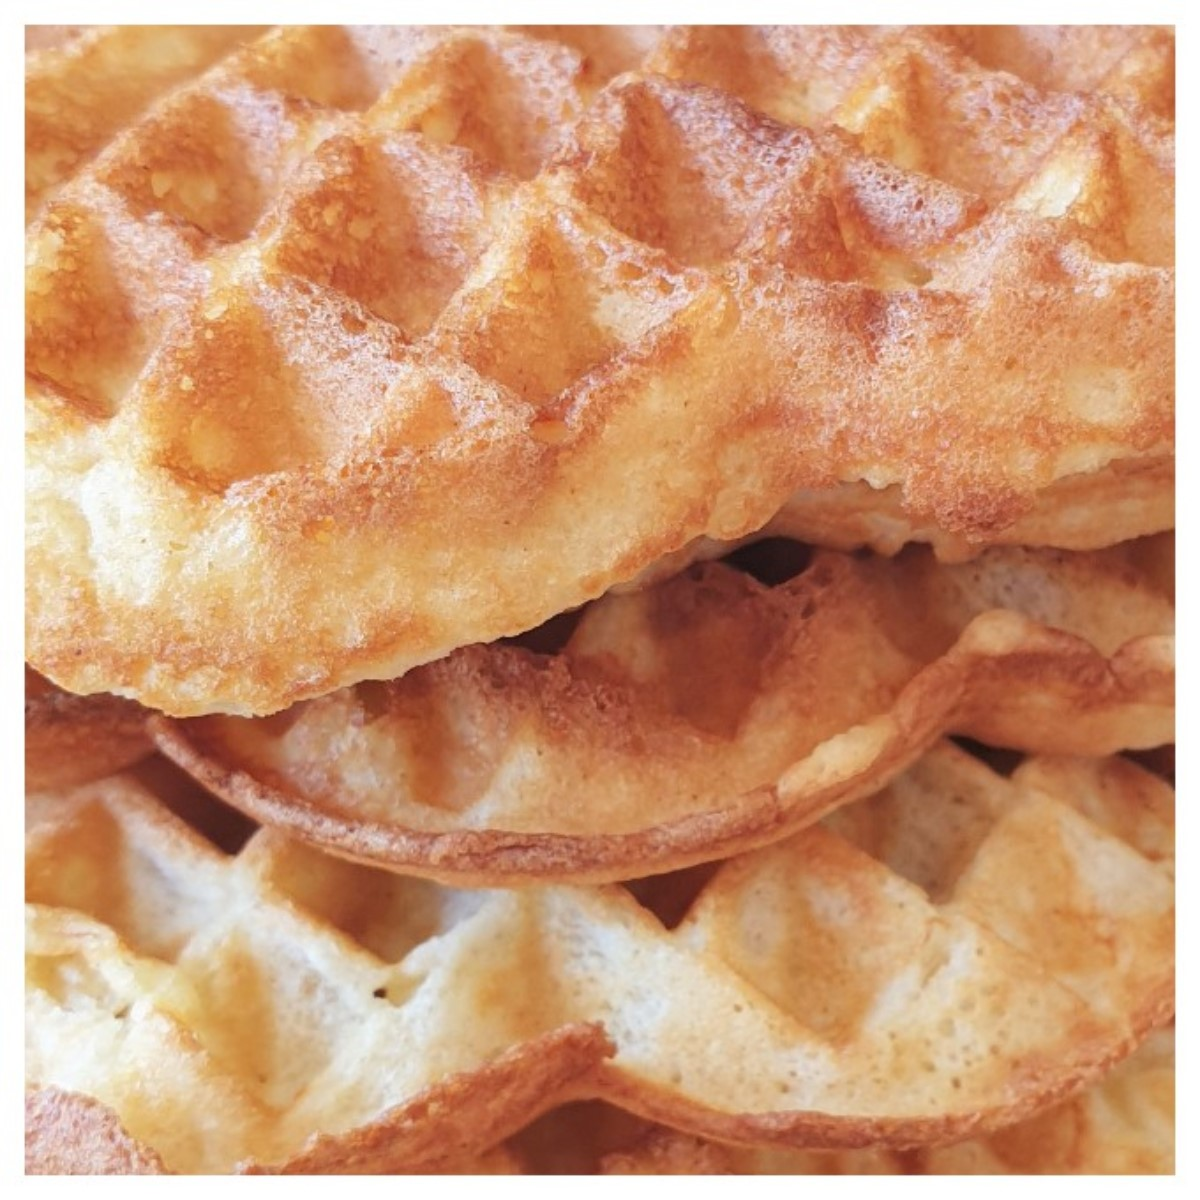 Close up of a pile of waffles showing the texture.